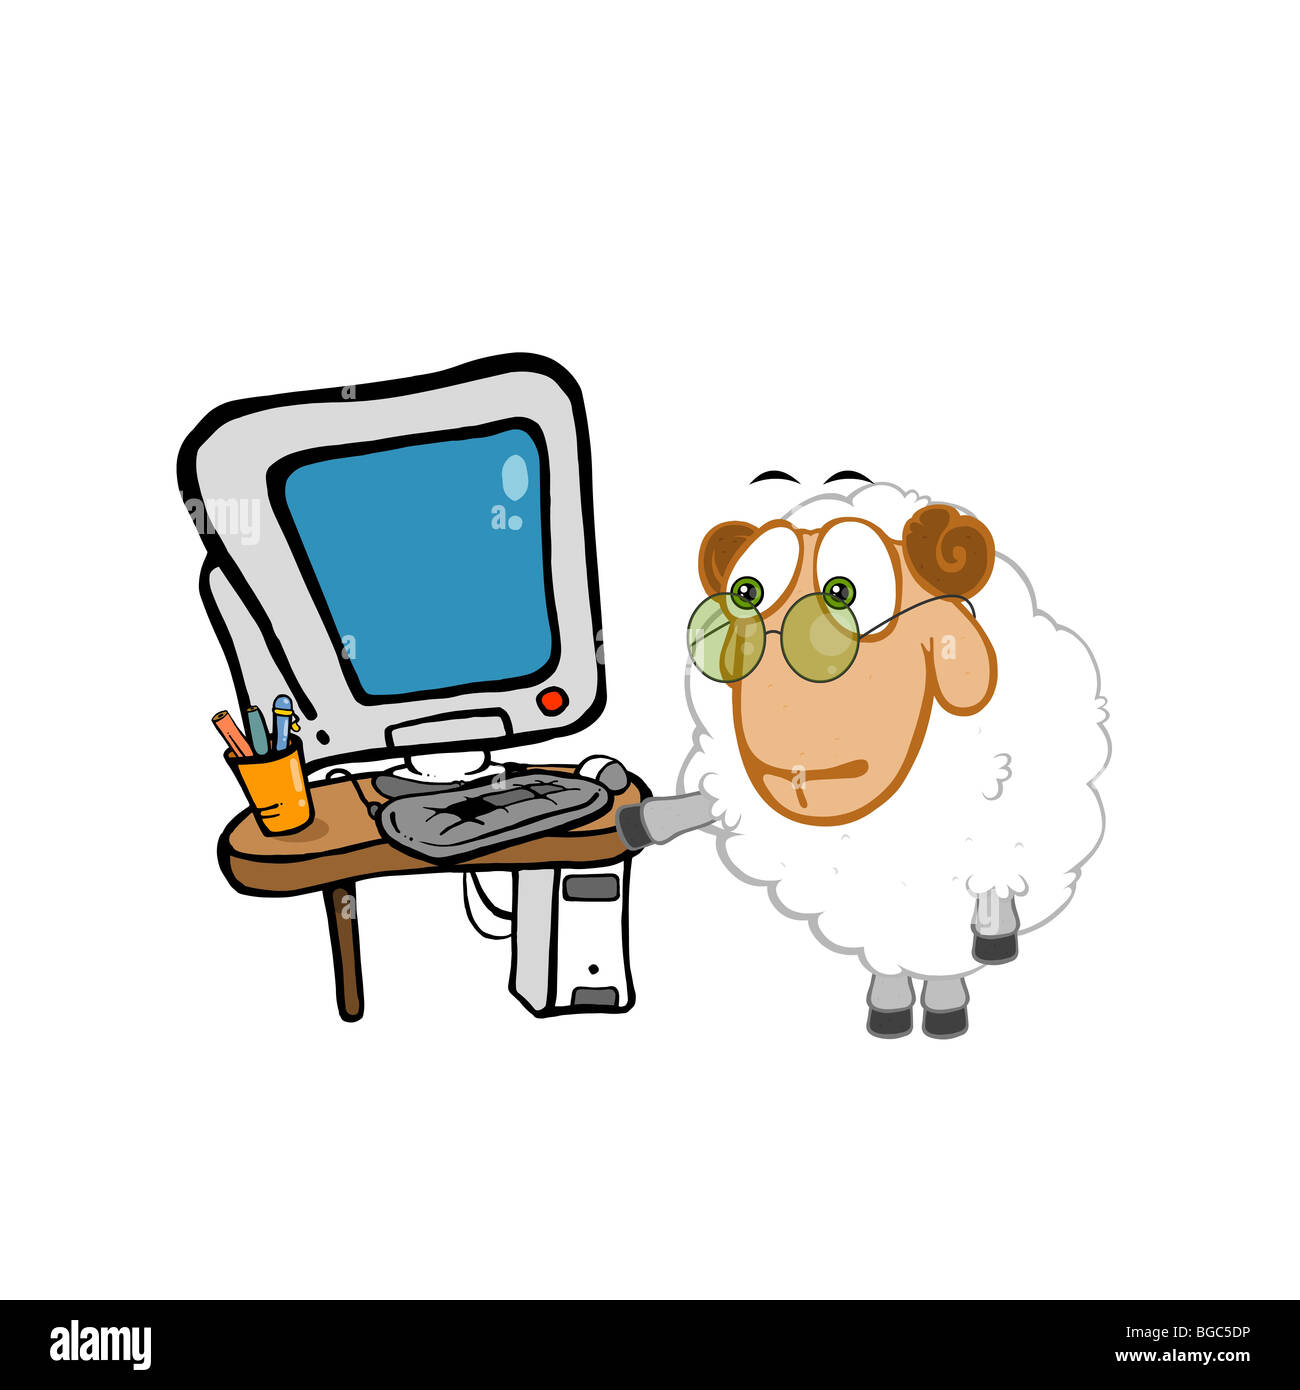 funny sheep represents its workplace cartoon image. Black Bedroom Furniture Sets. Home Design Ideas